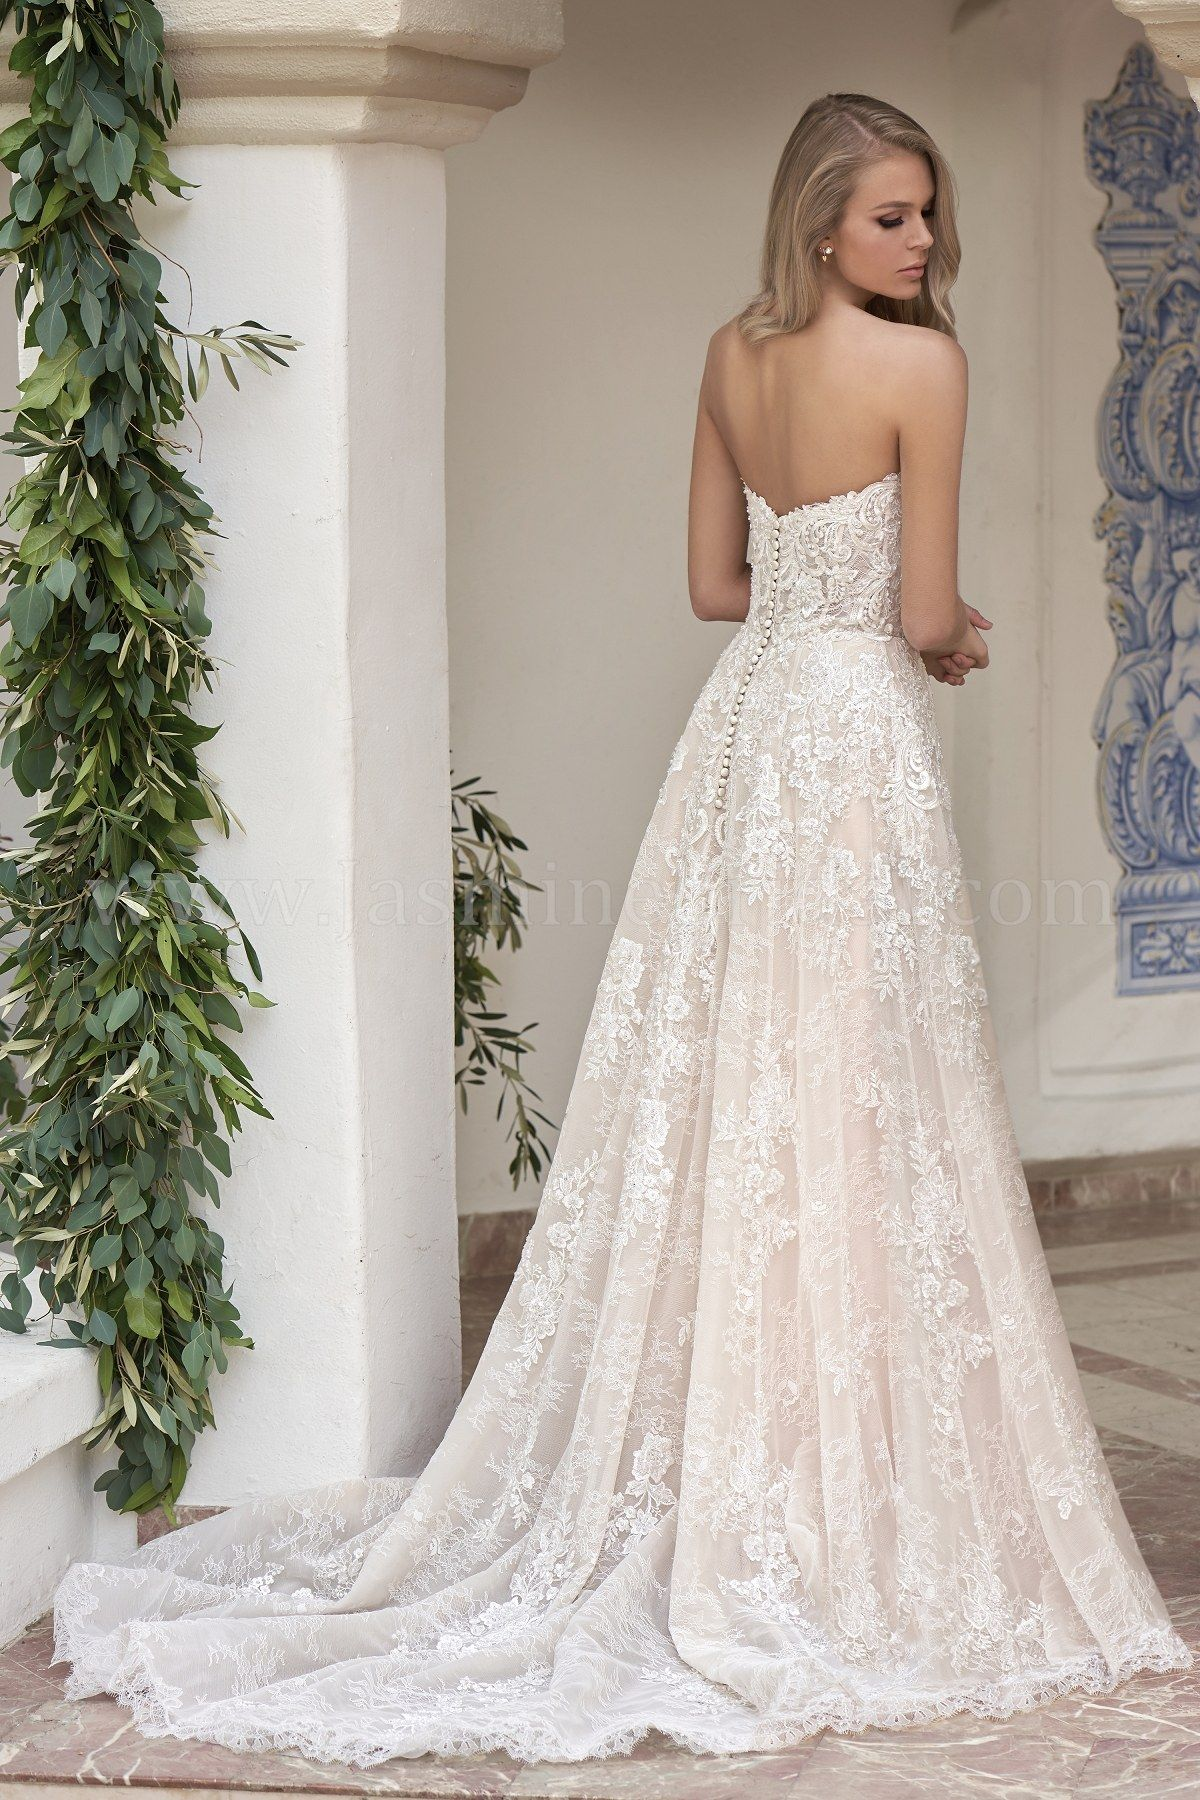 T202062 Strapless Sweetheart Embroidered Lace Tulle Organza Wedding Dress Drop Waist Wedding Dress Wedding Dress Organza Wedding Dress Couture